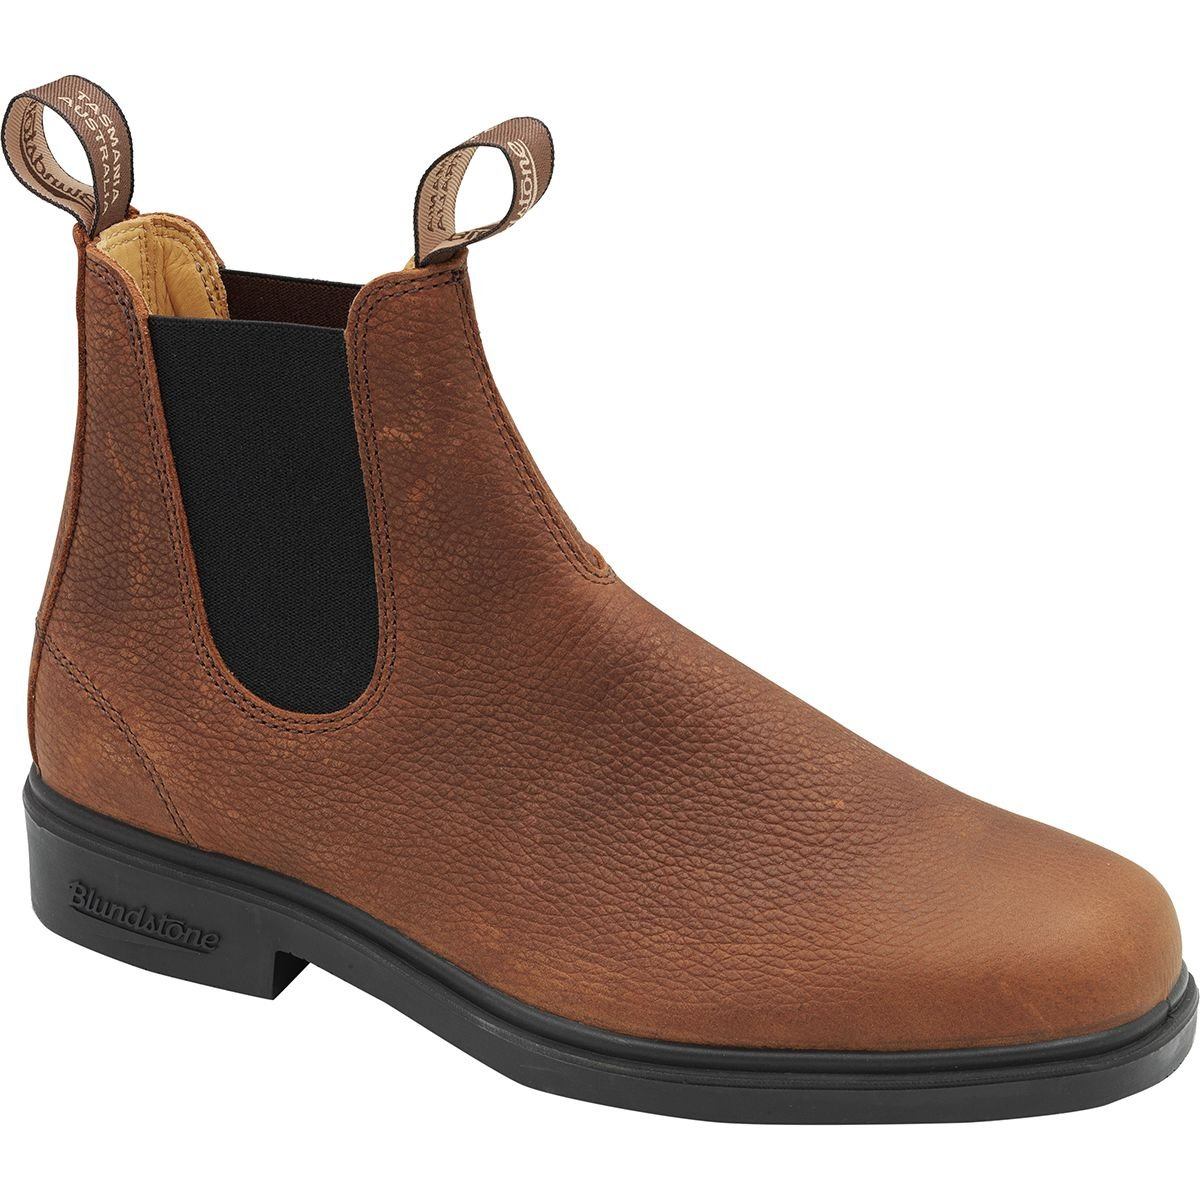 Blundstone Unisex Dress Series B07959P1FH 13|Grizzly Brown